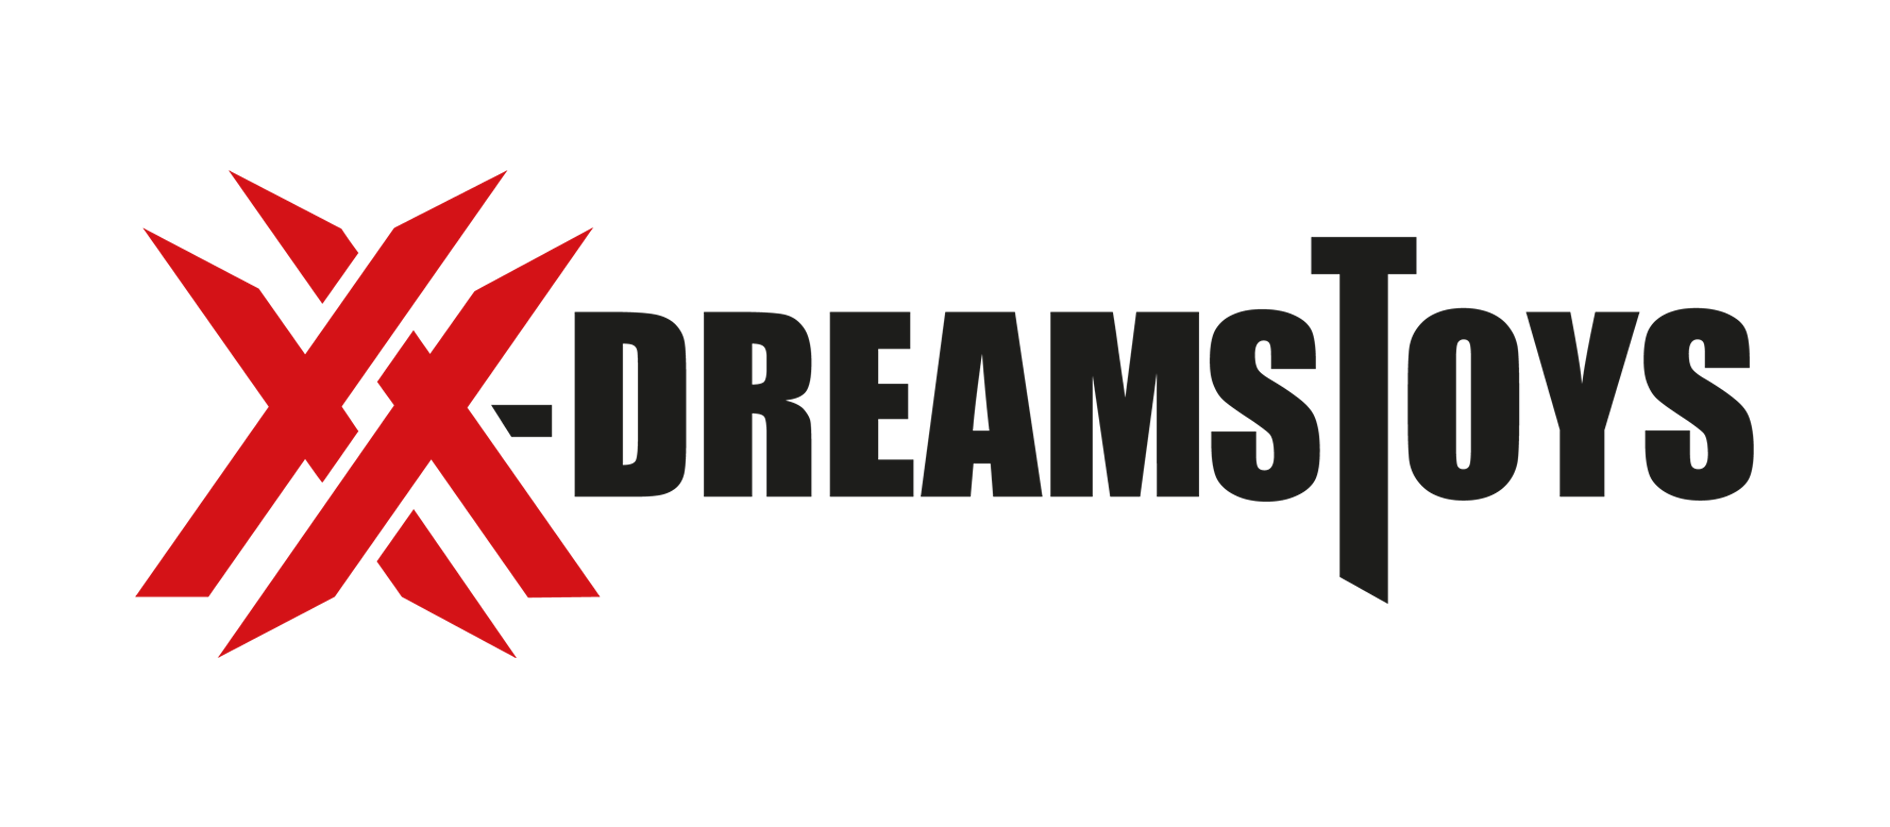 XXdreamSToys